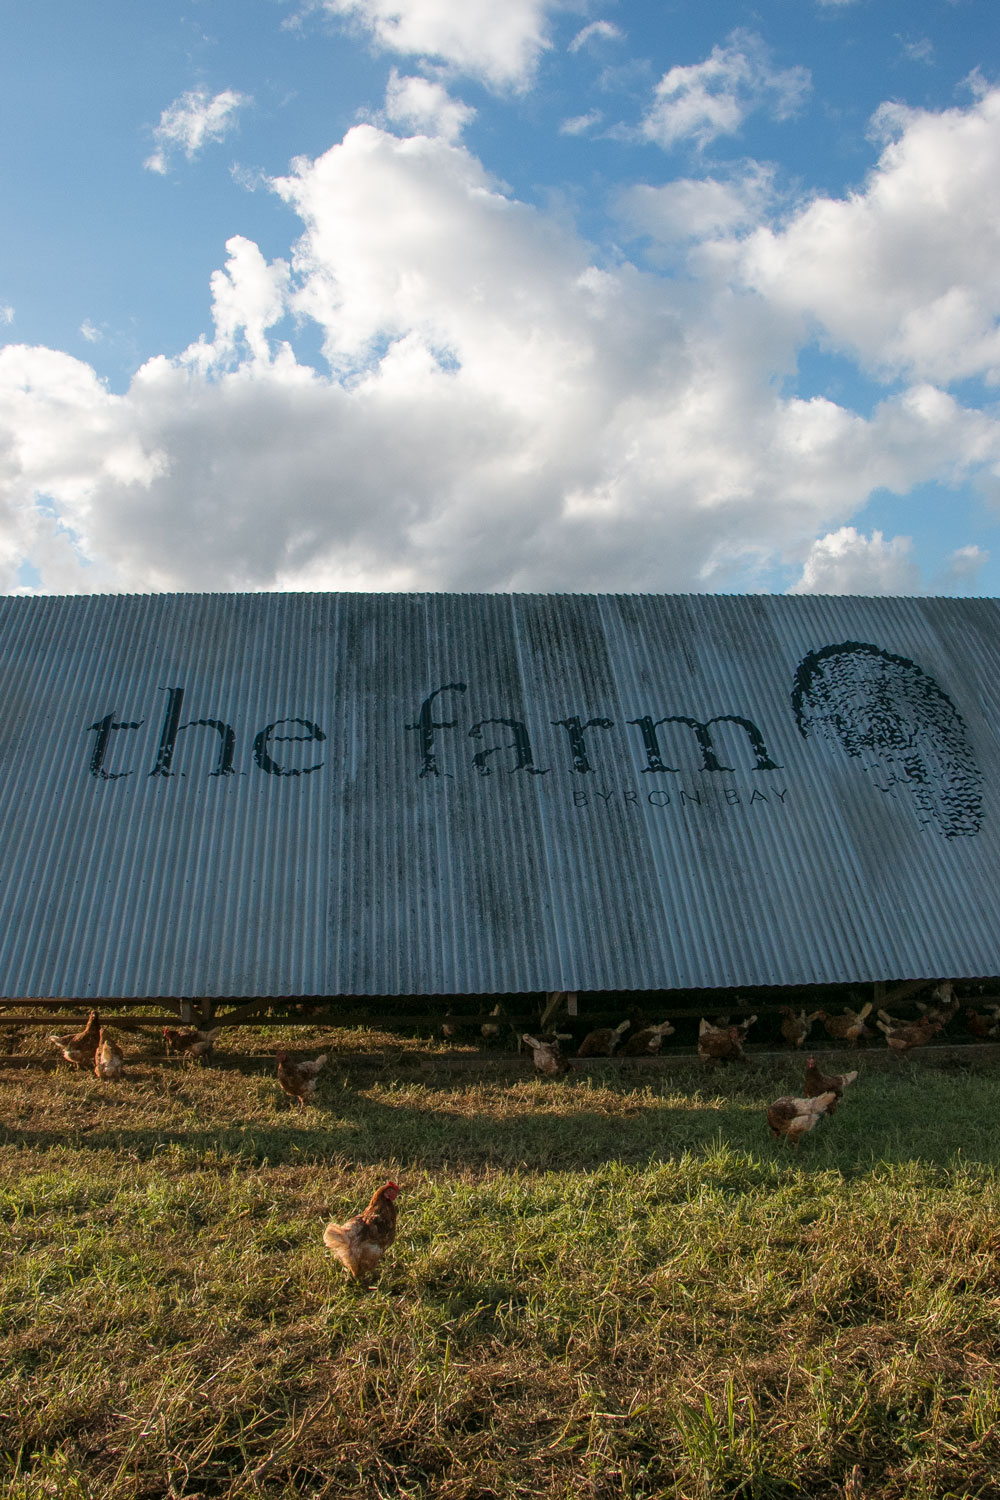 The-Farm-Chickens-Byron-Bay-Travel-Guide